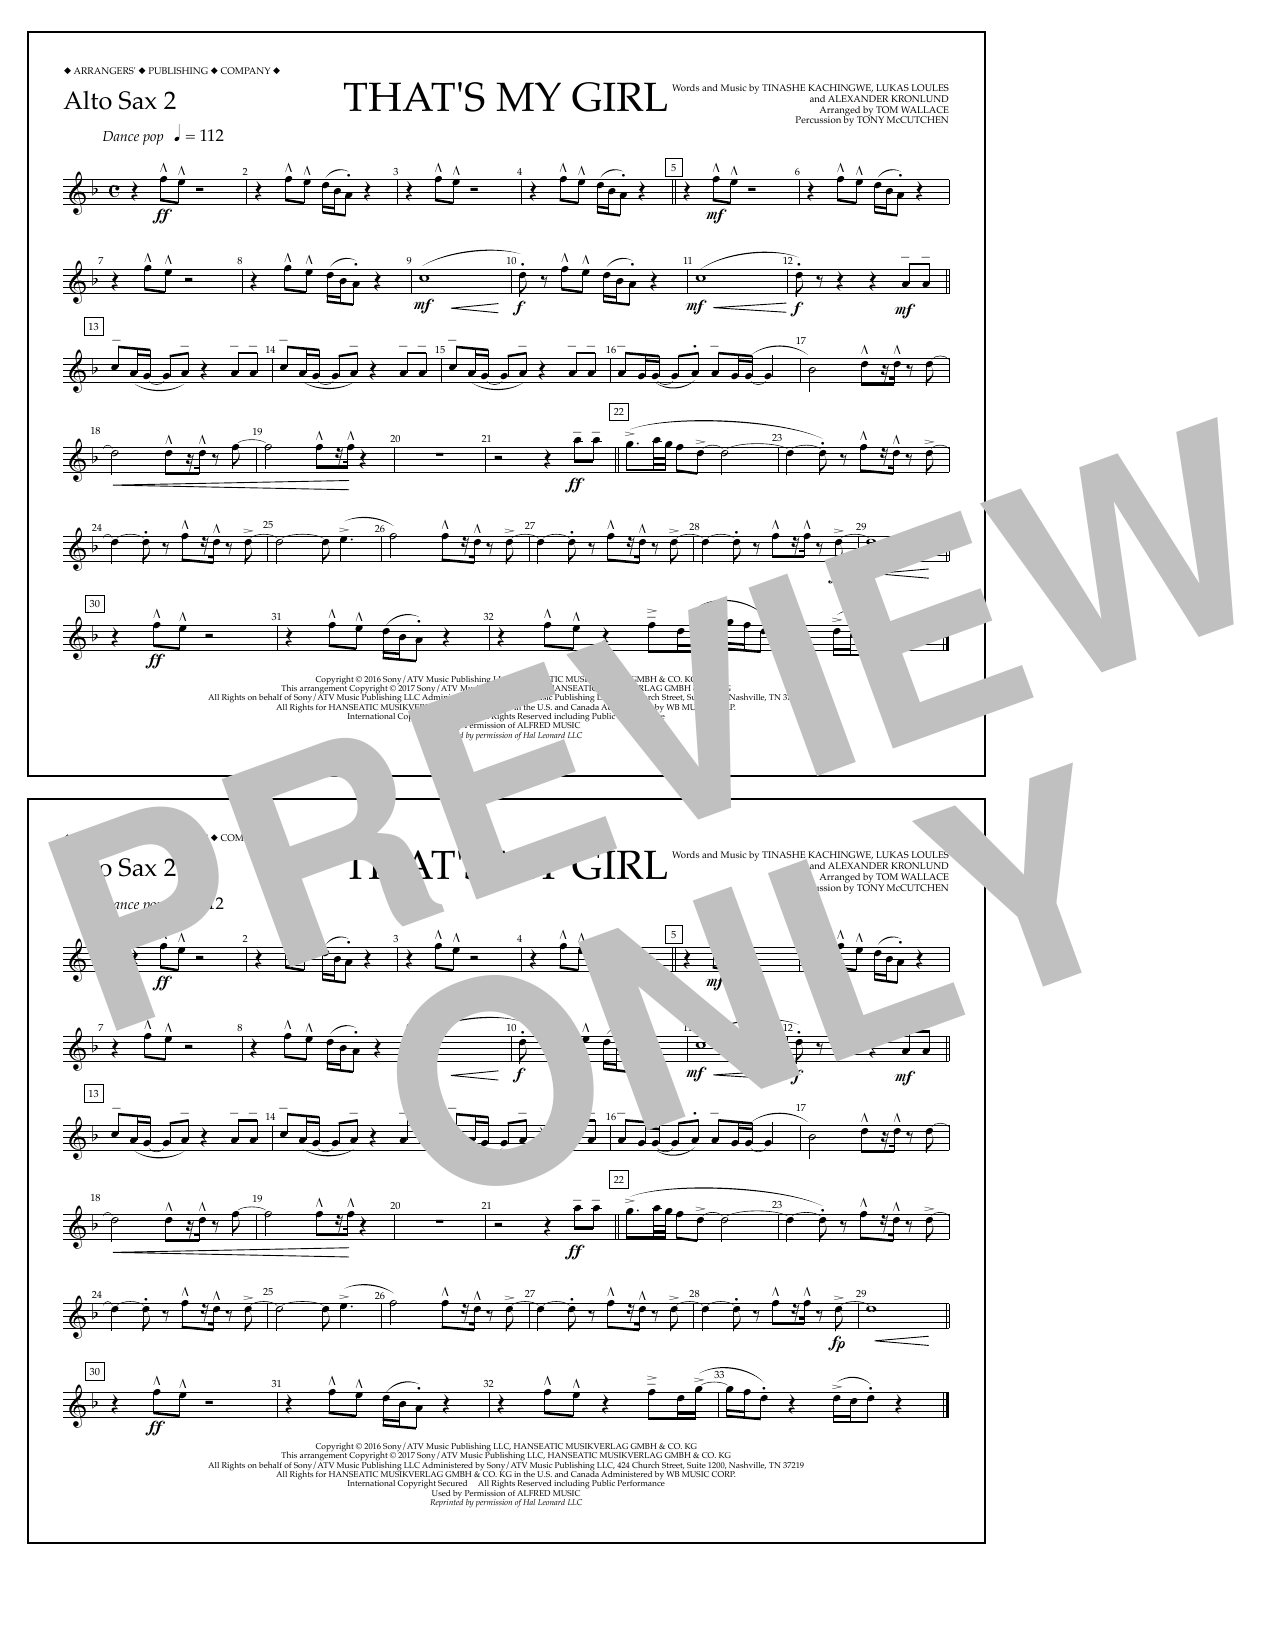 That's My Girl - Alto Sax 2 Sheet Music